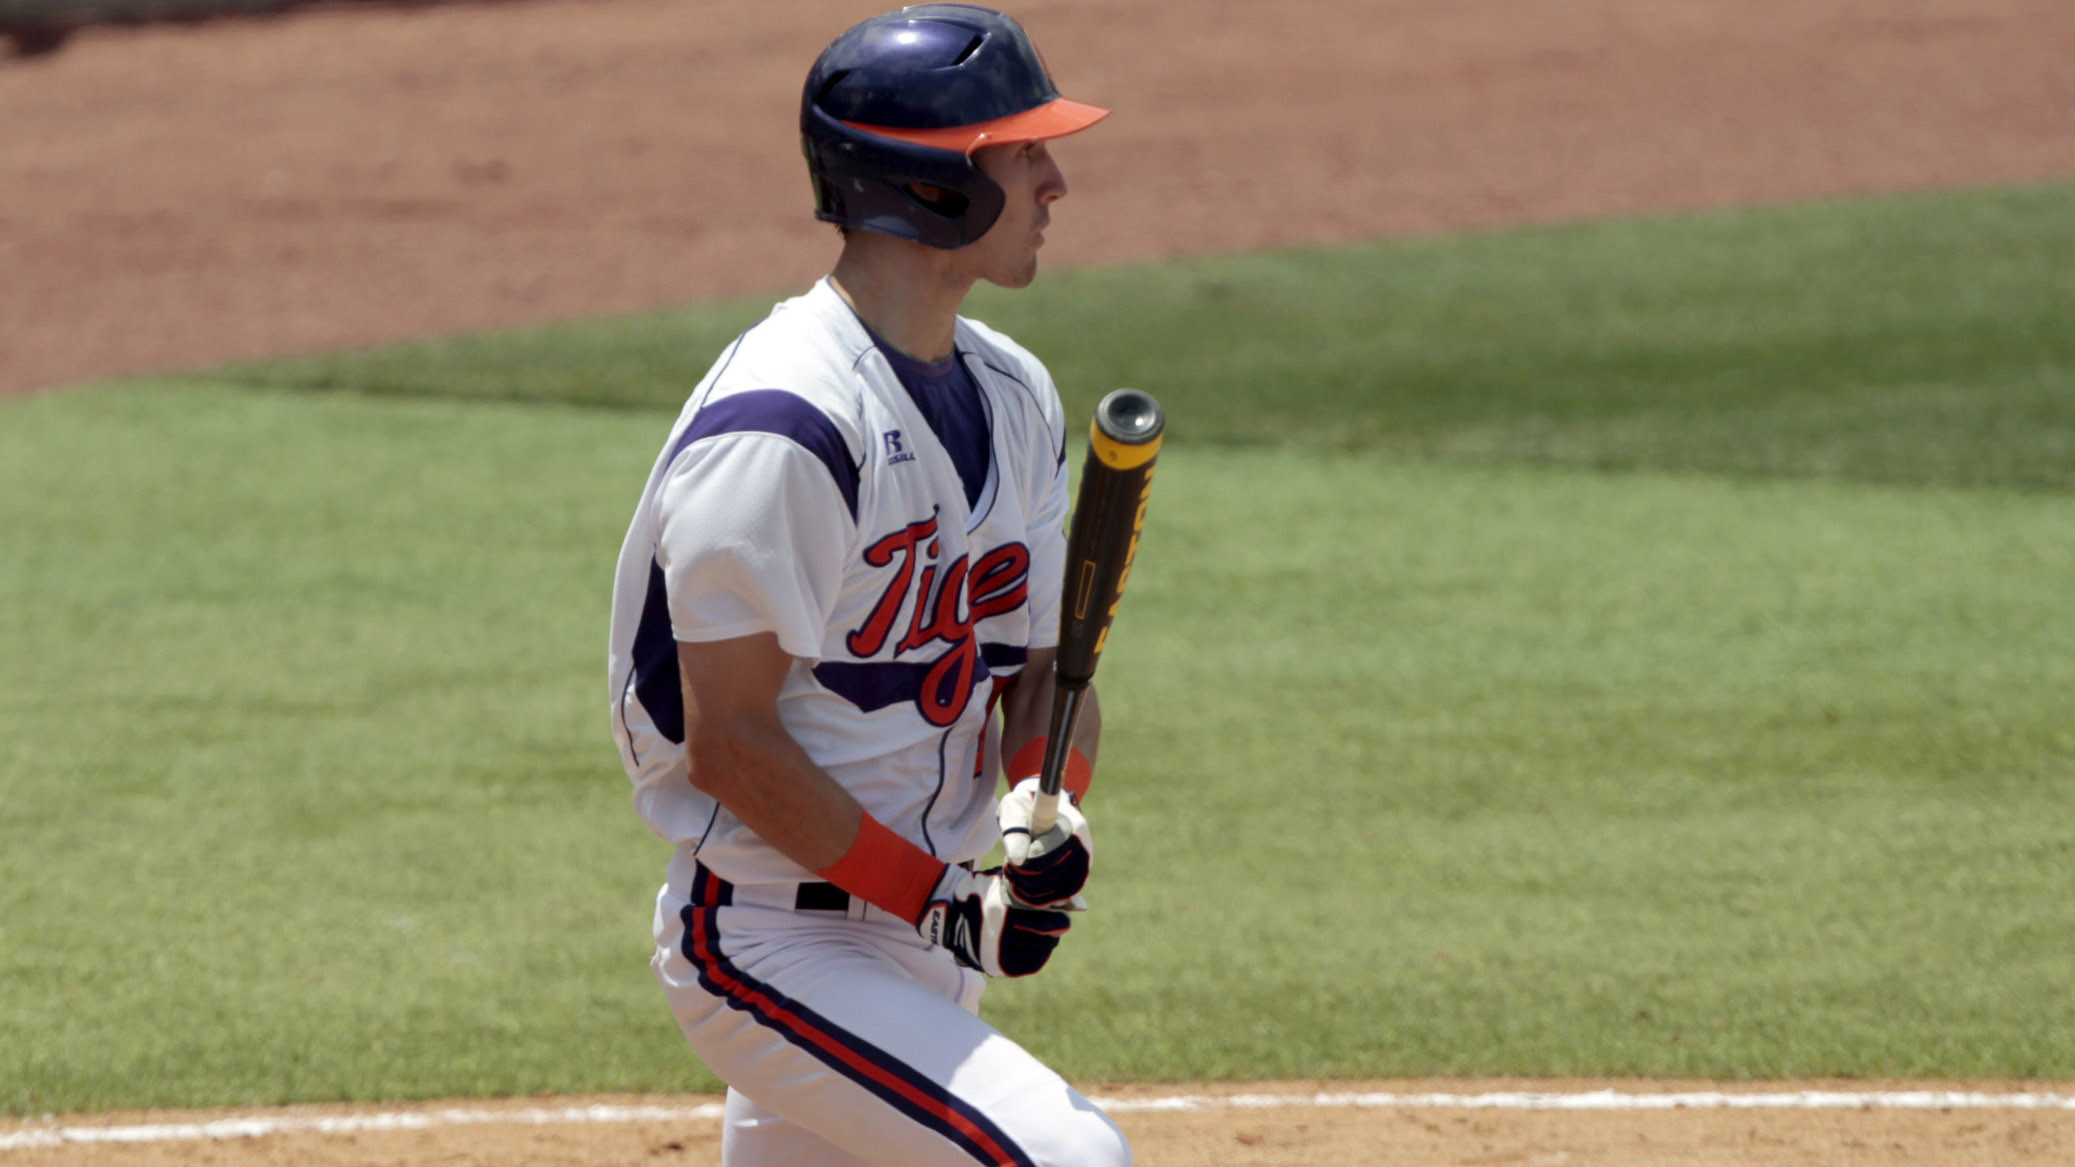 Richardson, Wimmer Lead Flames to 8-3 Win Over #17 Tigers in Columbia Regional Friday